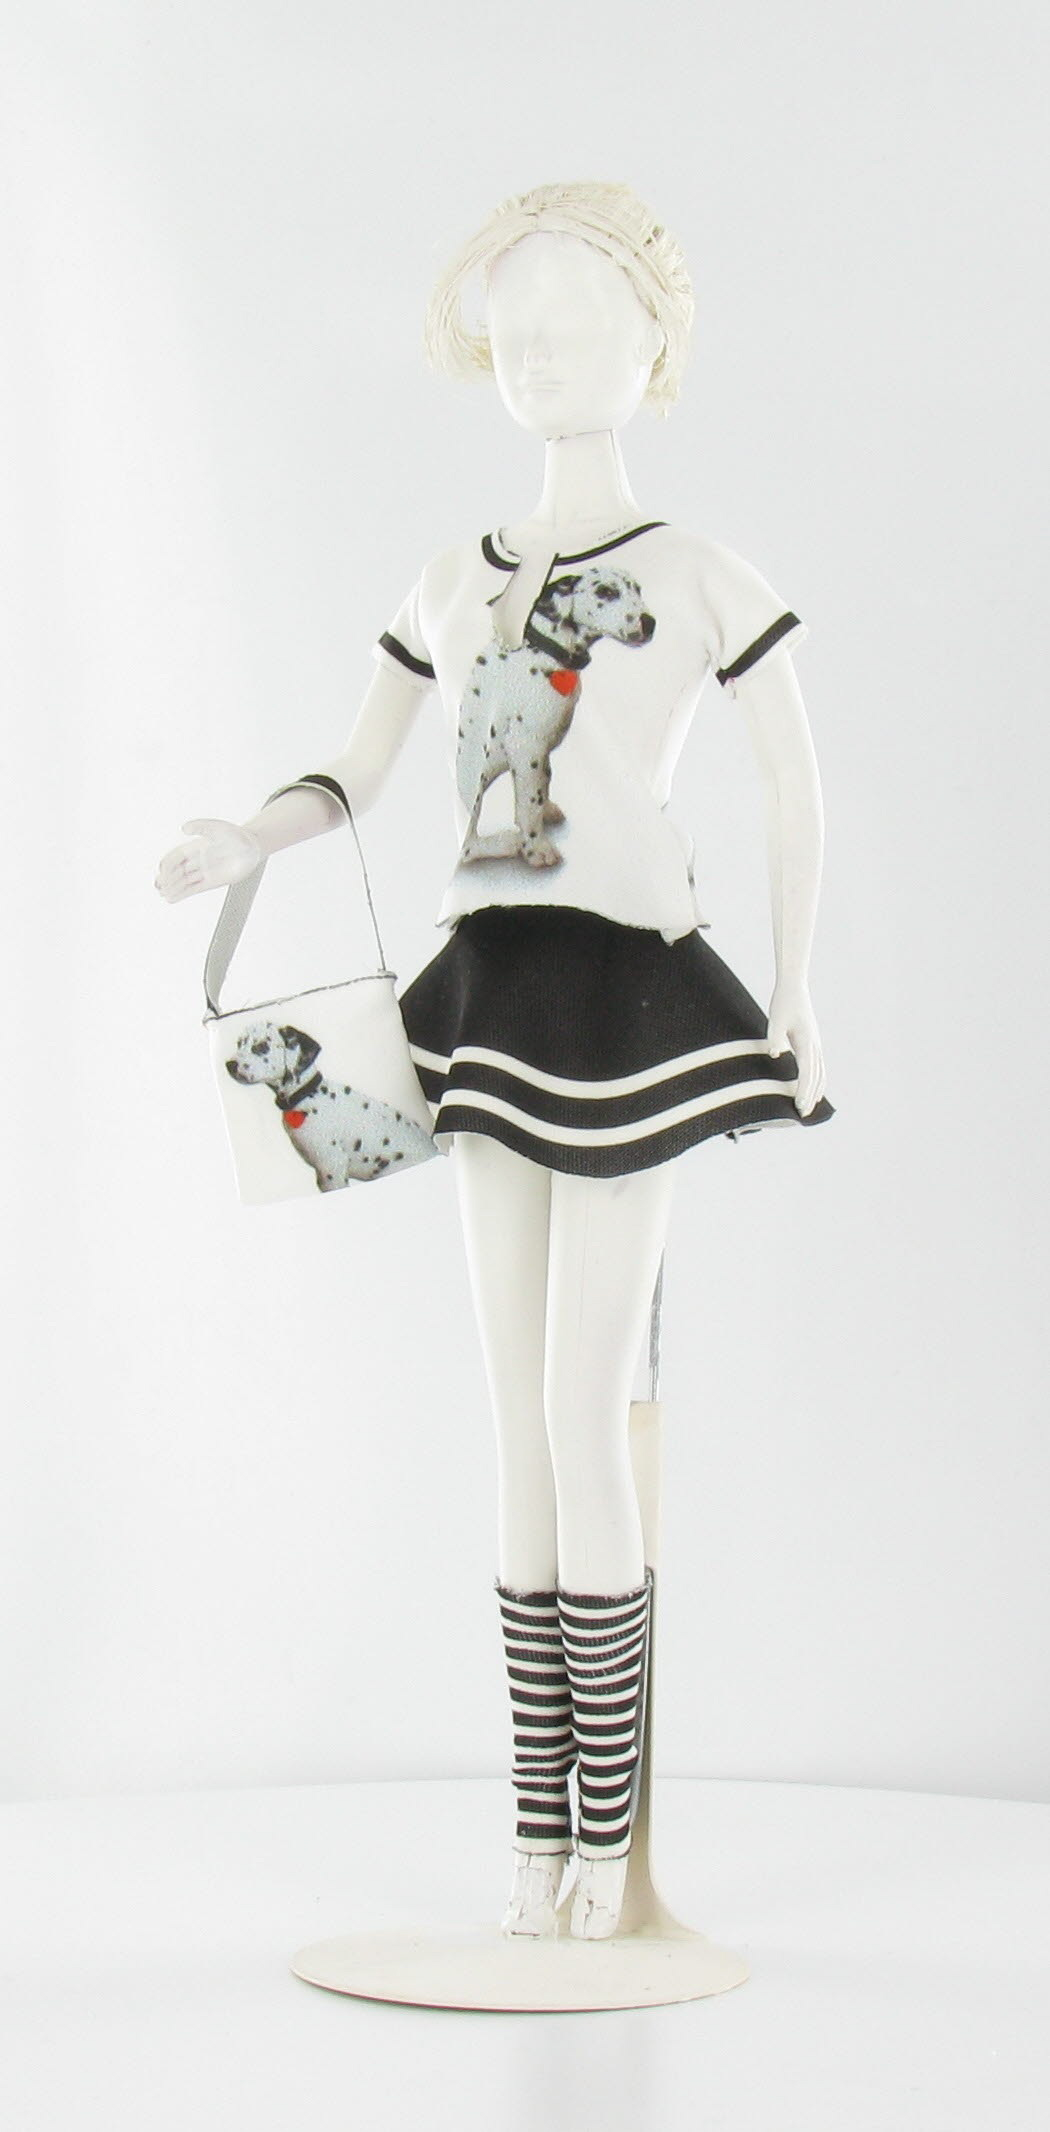 Dress Your Doll - Tiny Dalmation